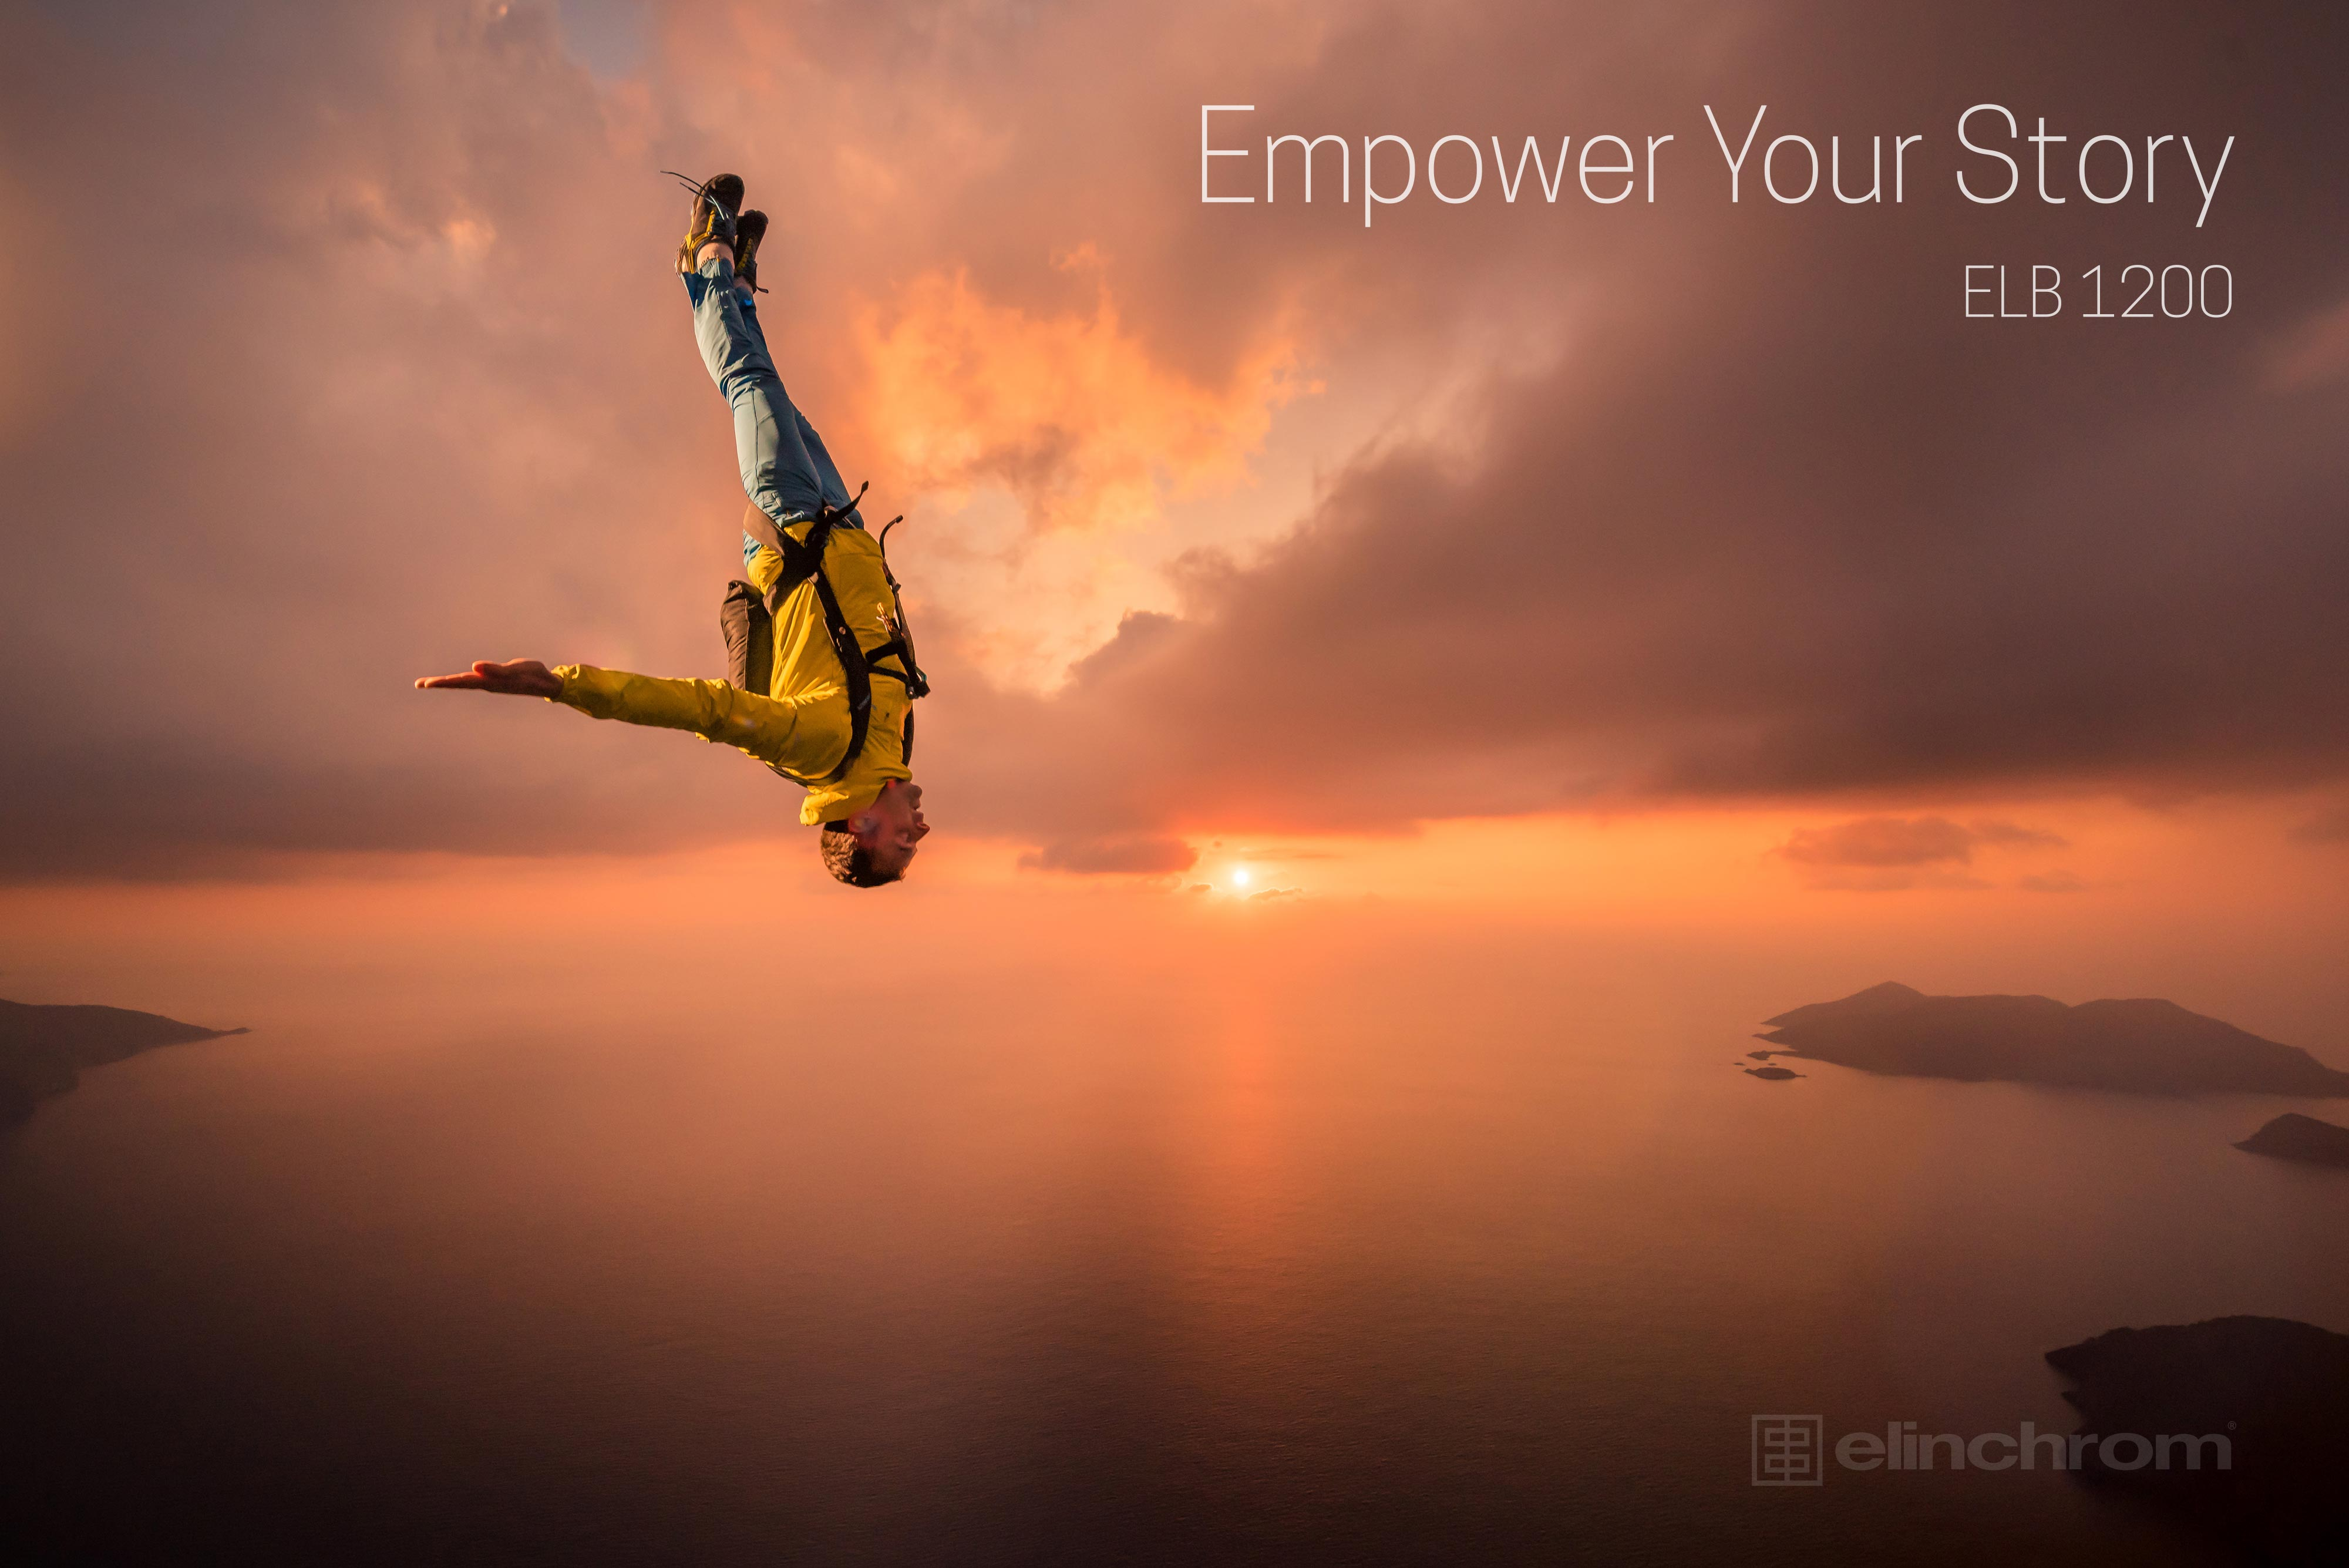 Elinchrom ELB1200 Empower your story